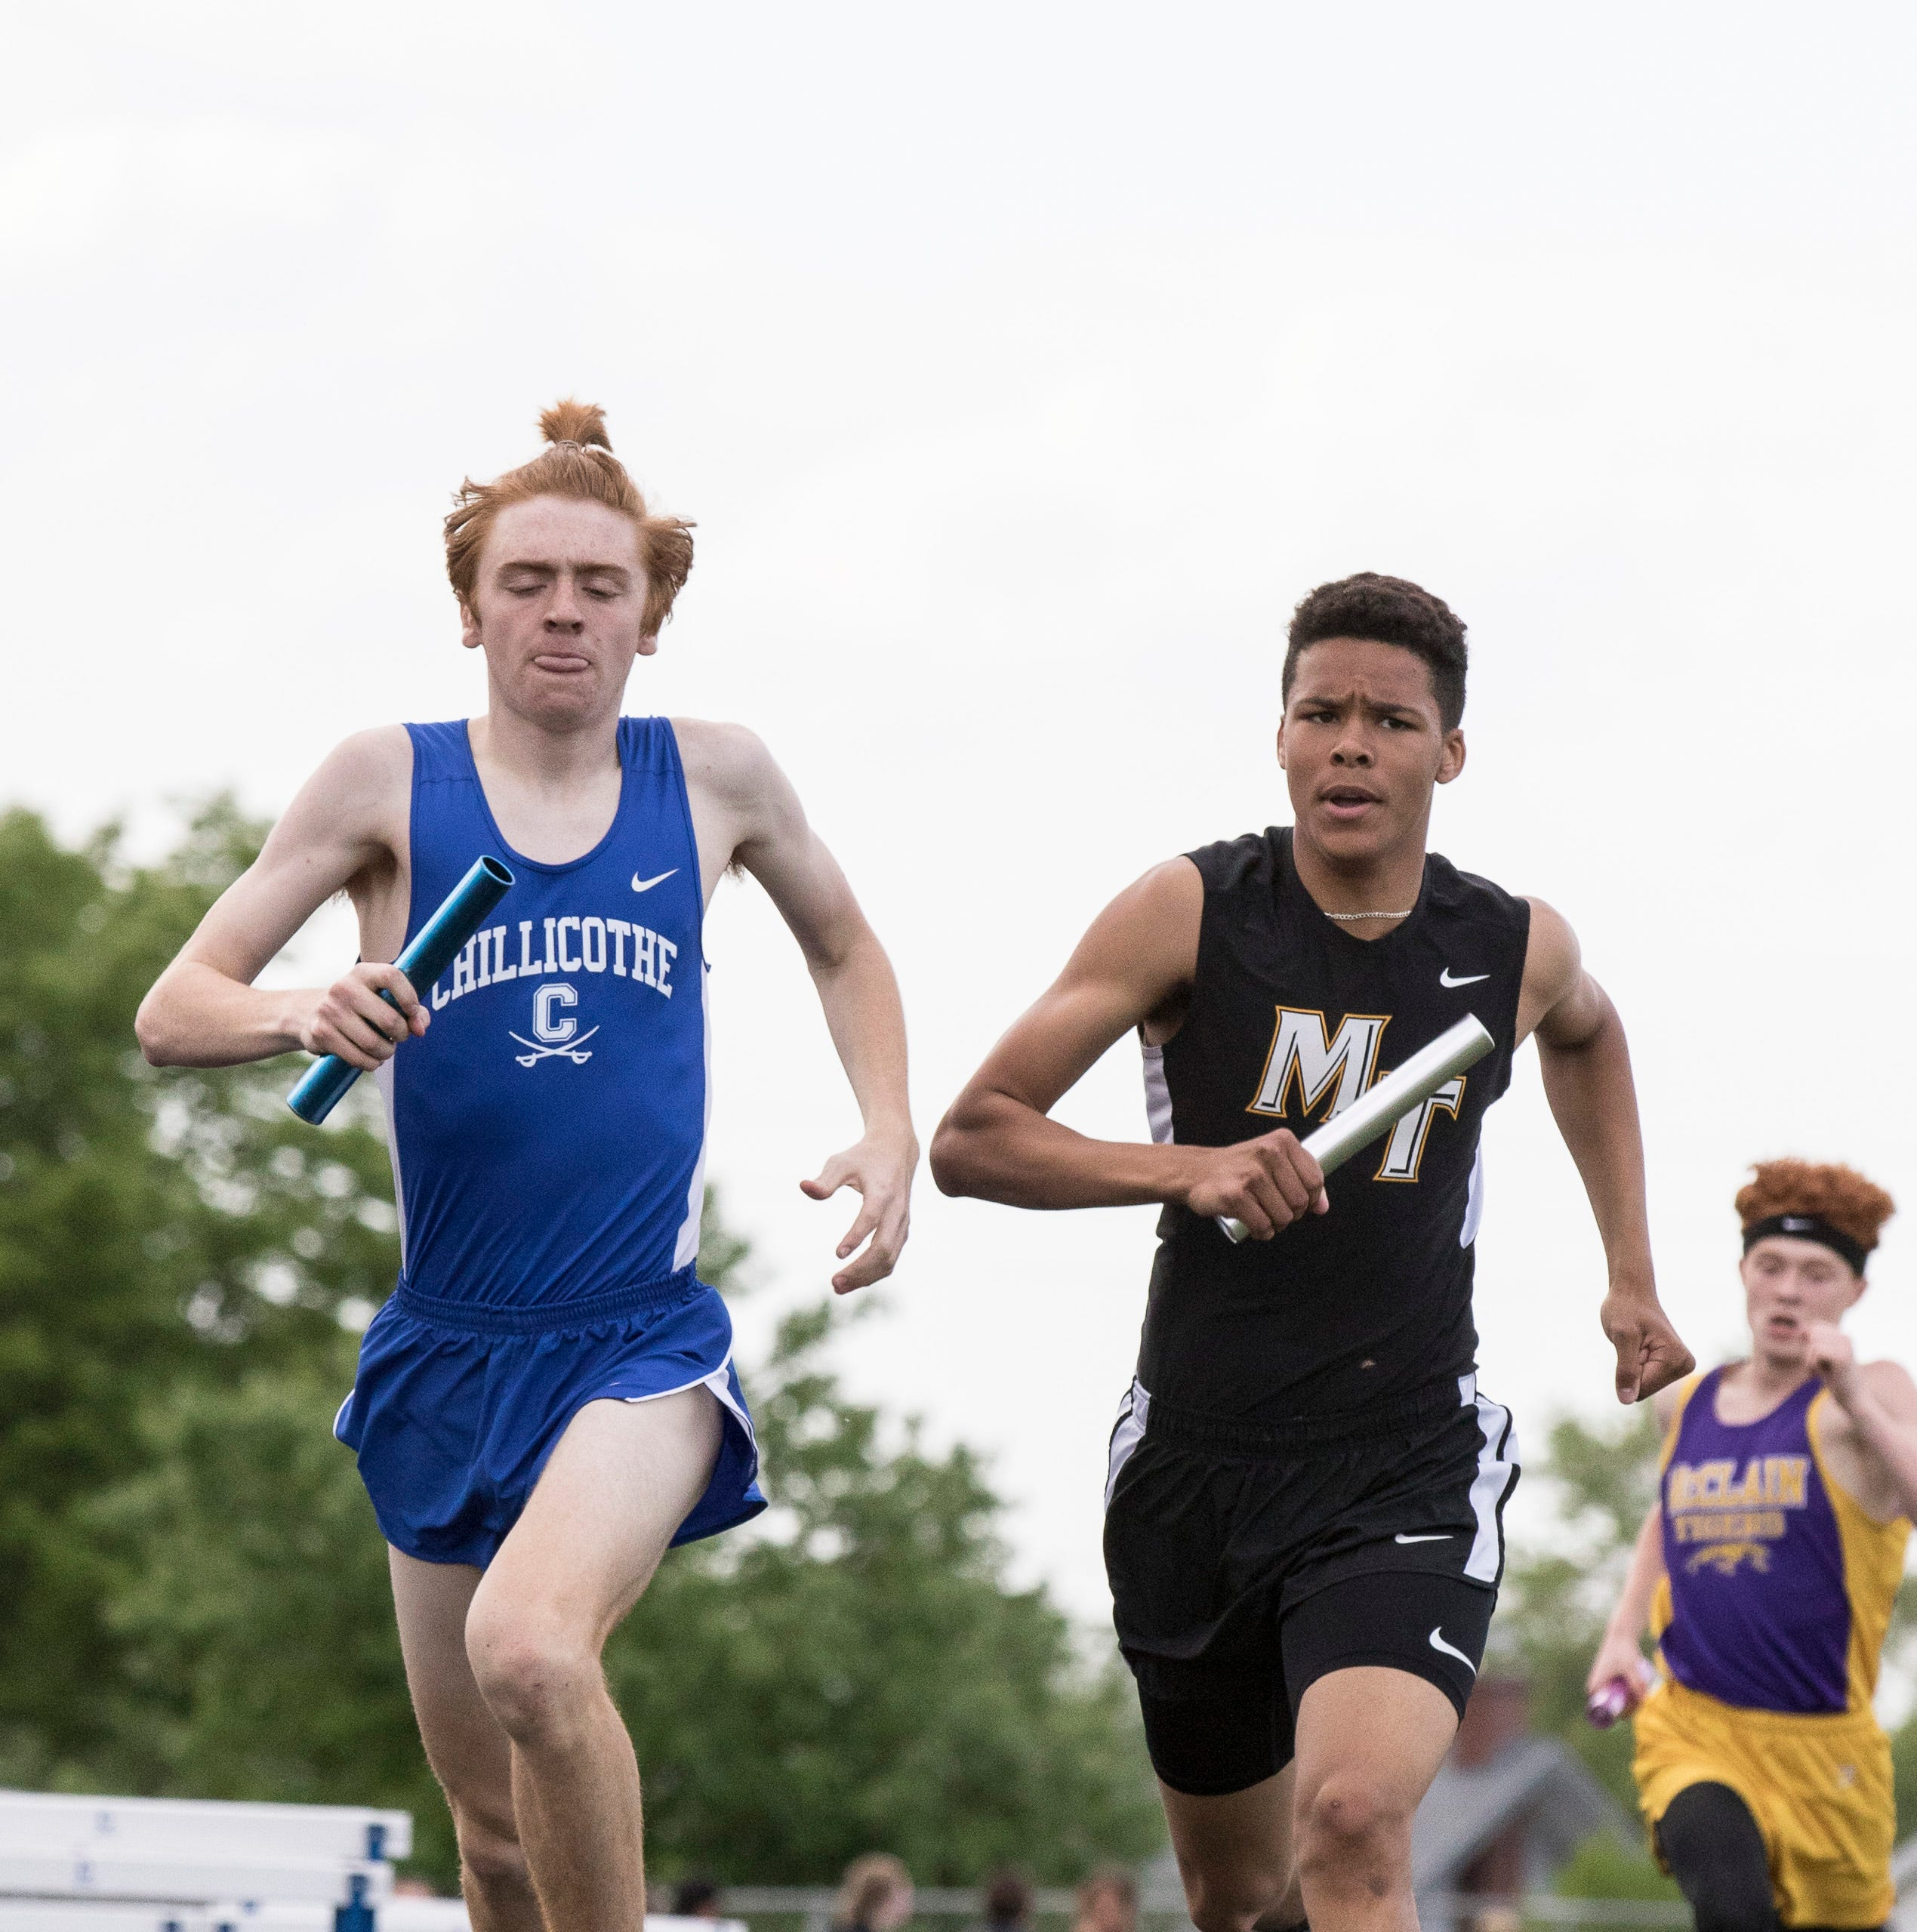 OHIO HS TRACK AND FIELD: Chillicothe boys win FAC title, girls finish runner-up